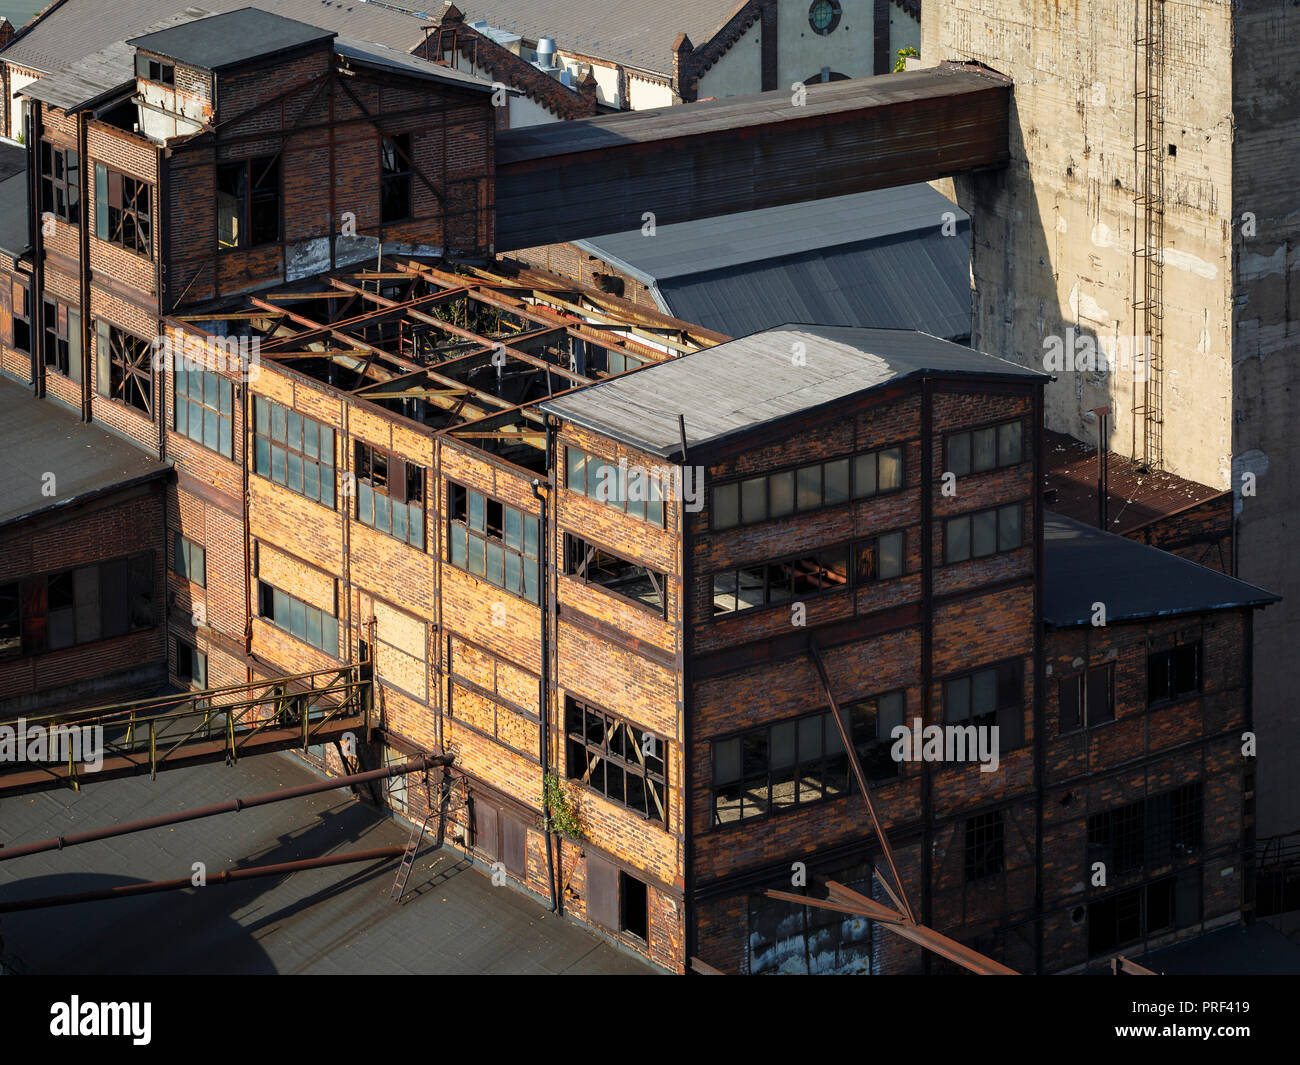 Ostrava, Czech Republic - August 21, 2018: Buildings of coke oven in Lower Vitkovice, a national site of industrial heritage consisting of a unique co - Stock Image